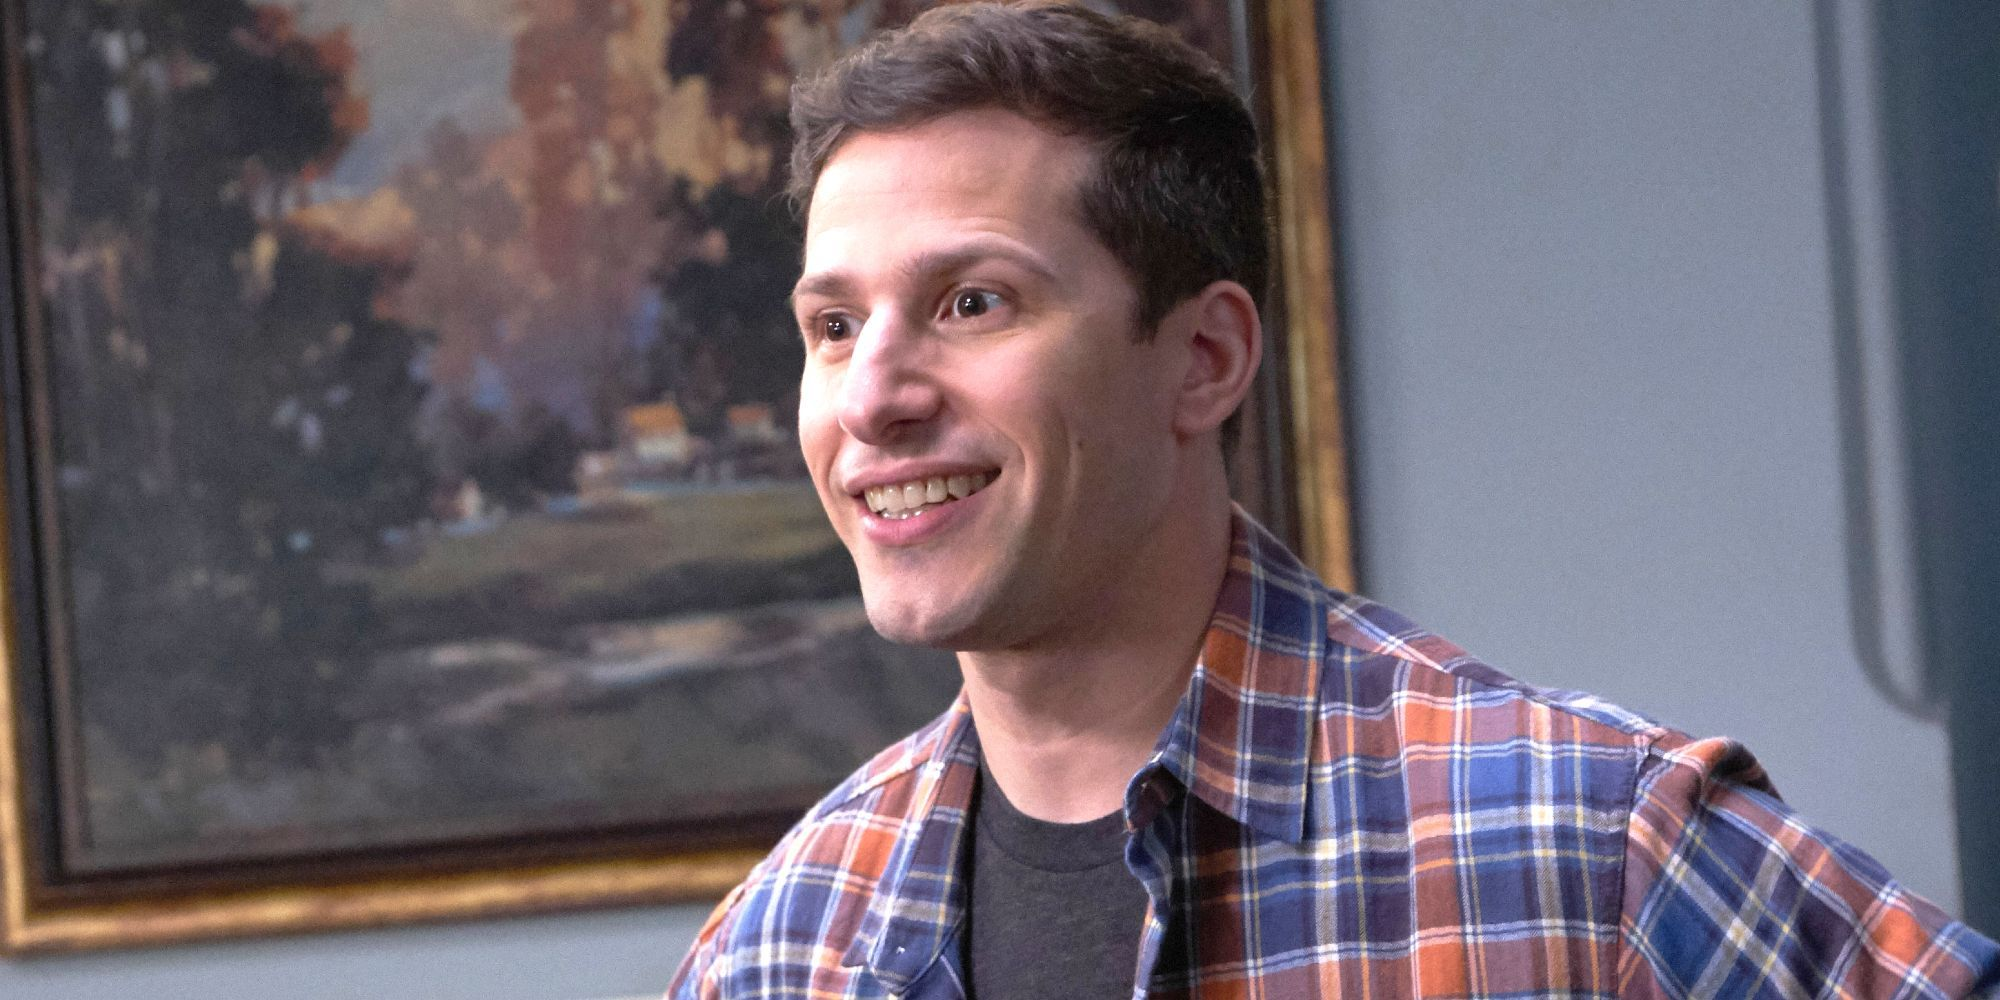 Andy Samberg Has Strong Words If You Don't Like The New Oscars Rules